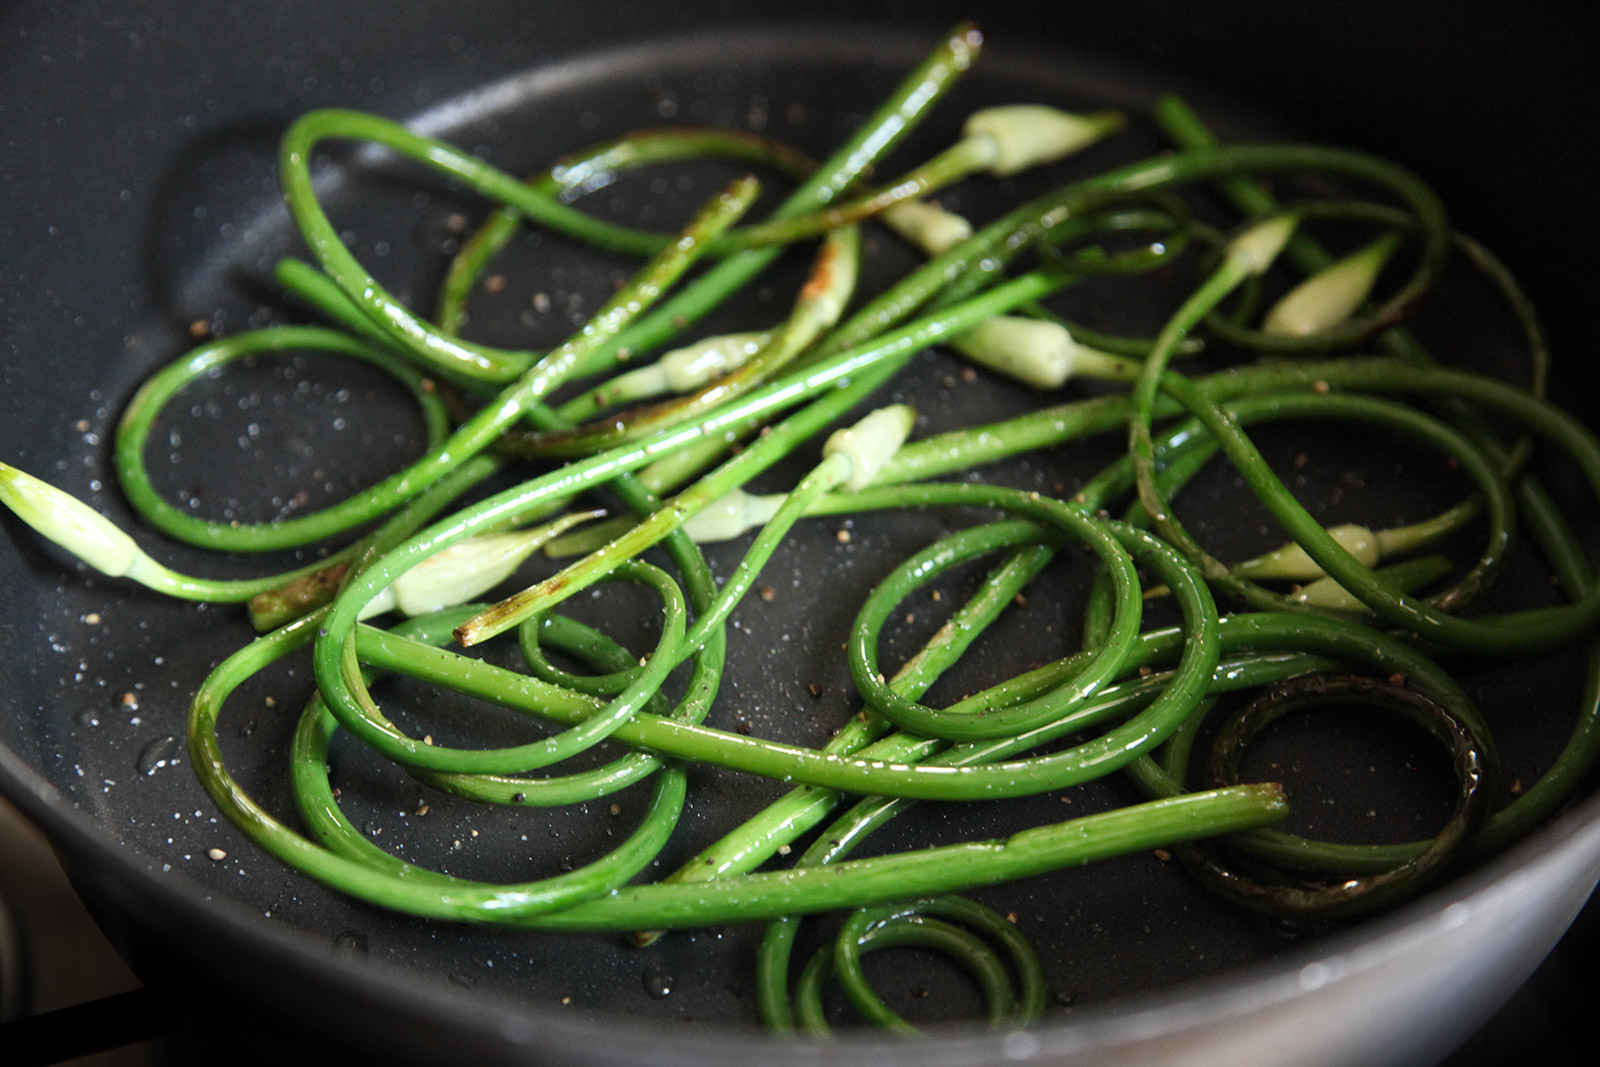 Sauteeing Garlic Scapes with Olive Oil, Sea Salt & Freshly Ground Pepper